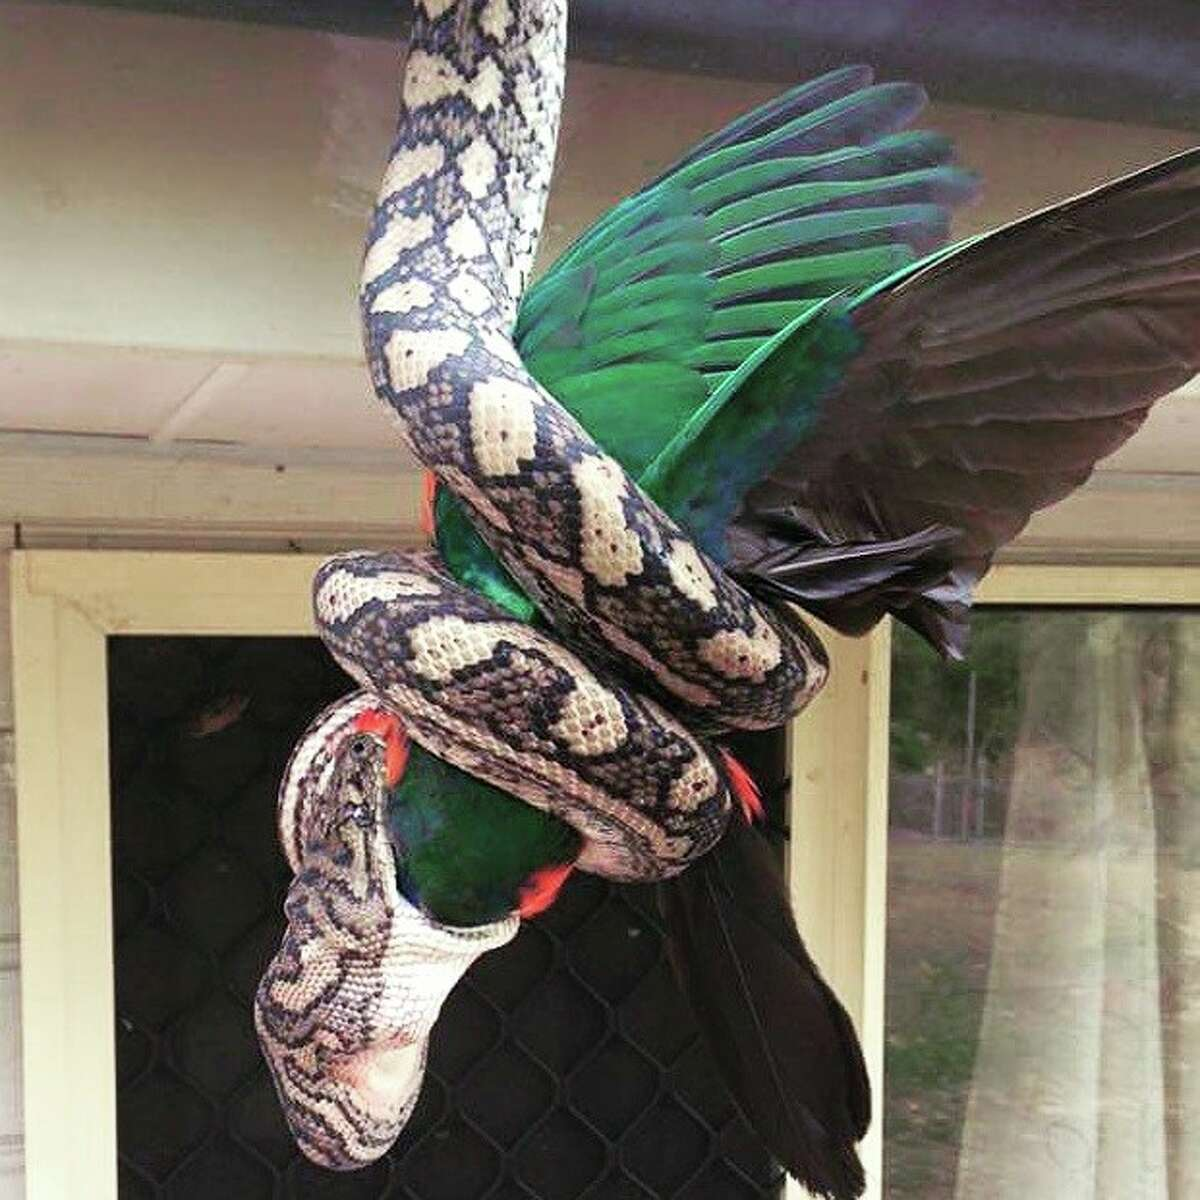 Python begins to ingest the parrot.